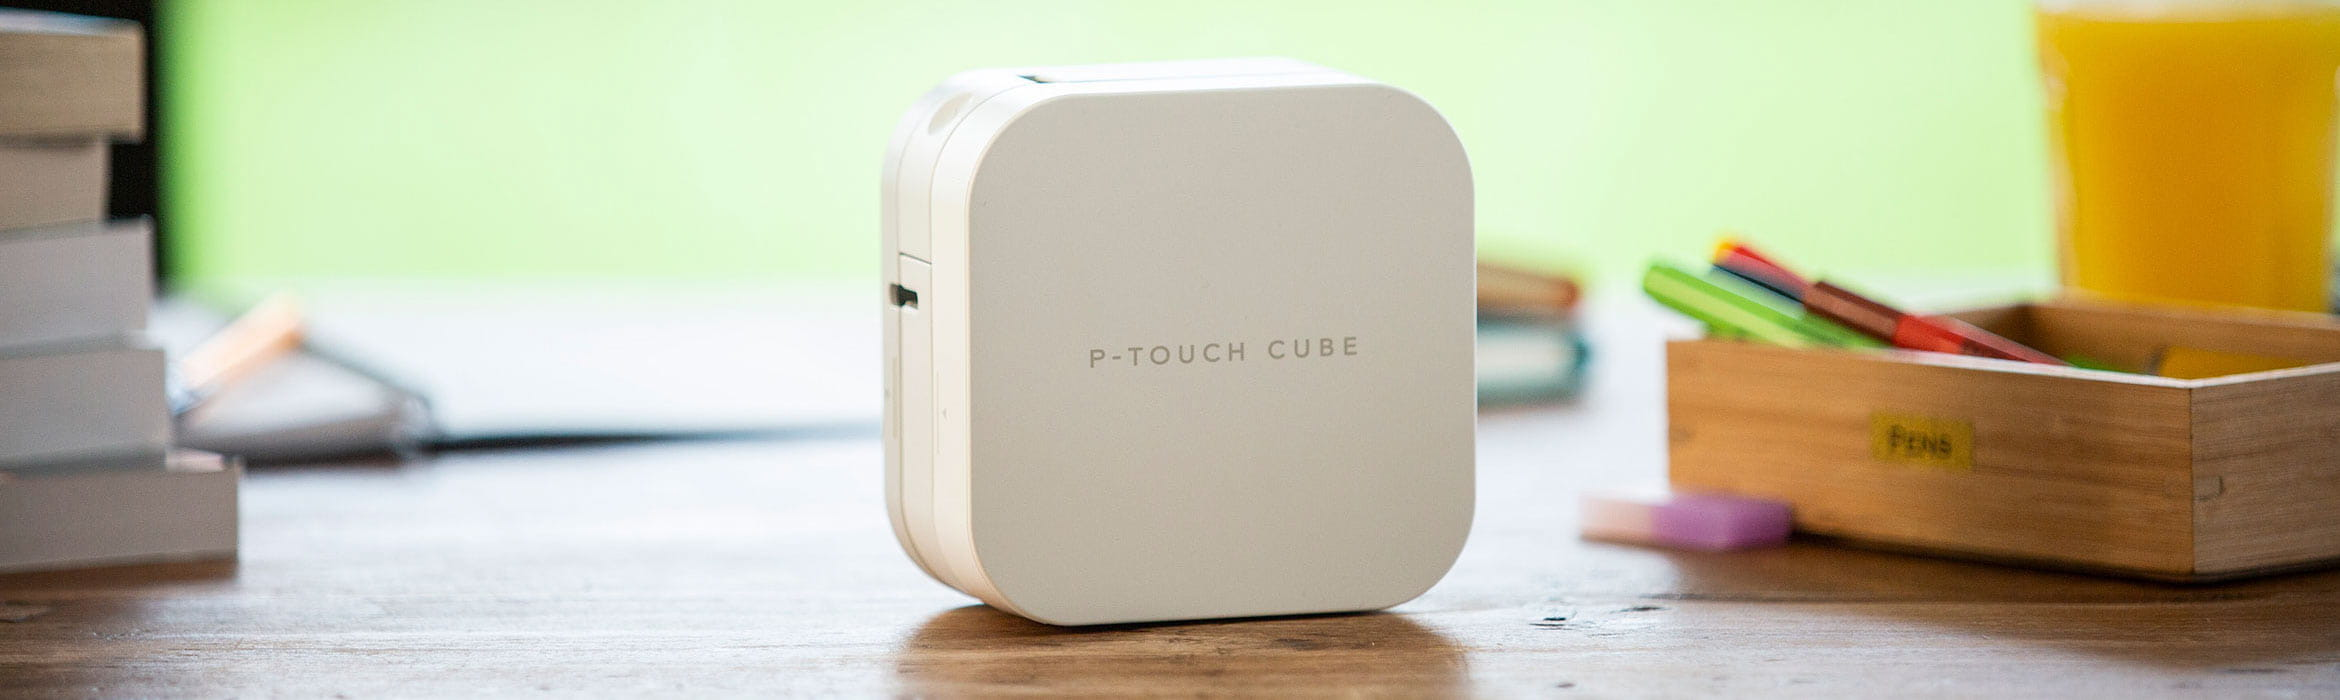 Pagina P-touch CUBE